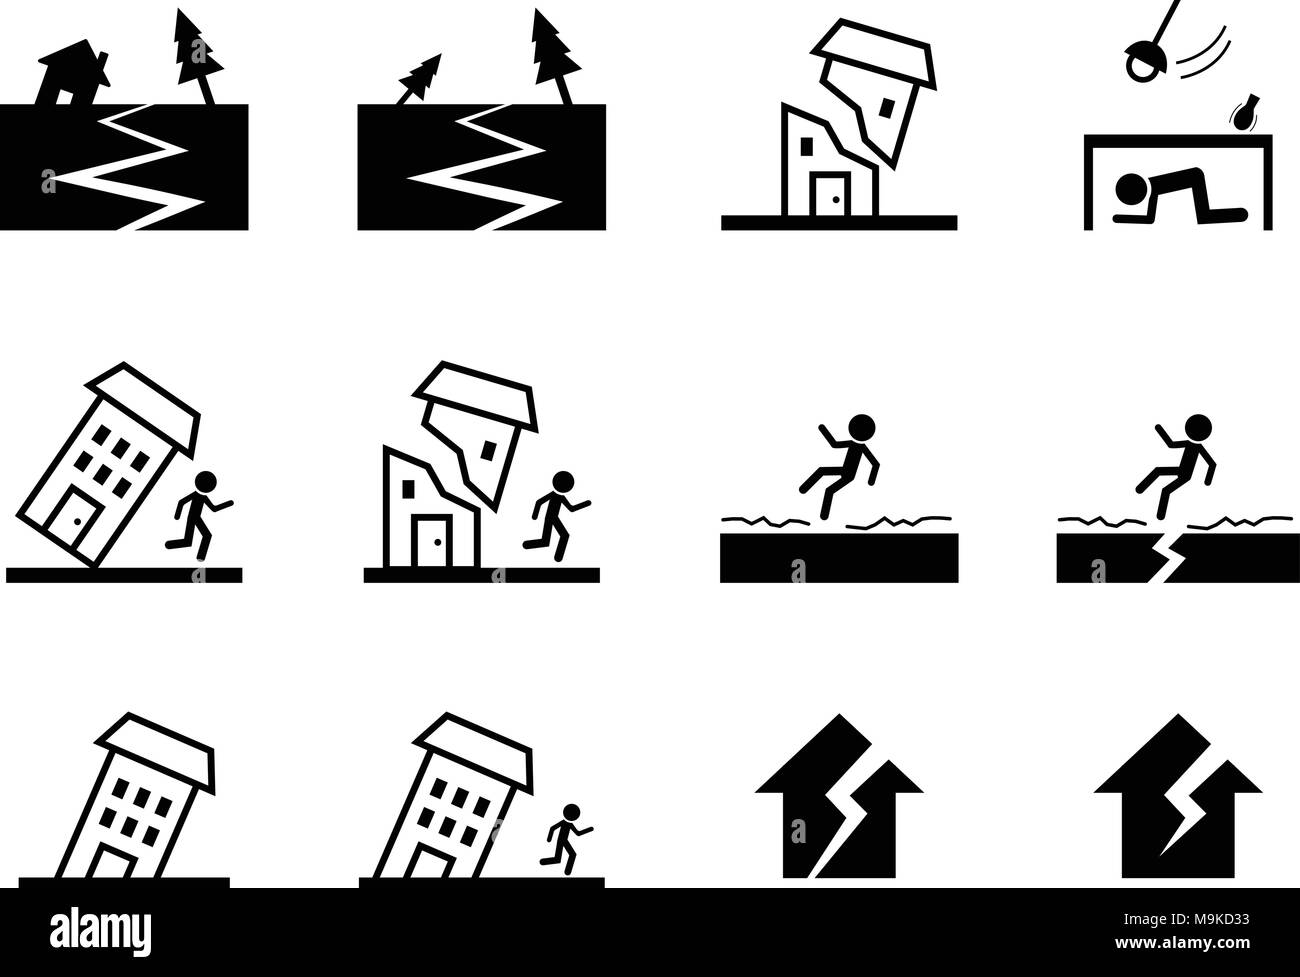 Set Of Earthquake Icon And Symbol In Vector Art Design Stock Vector